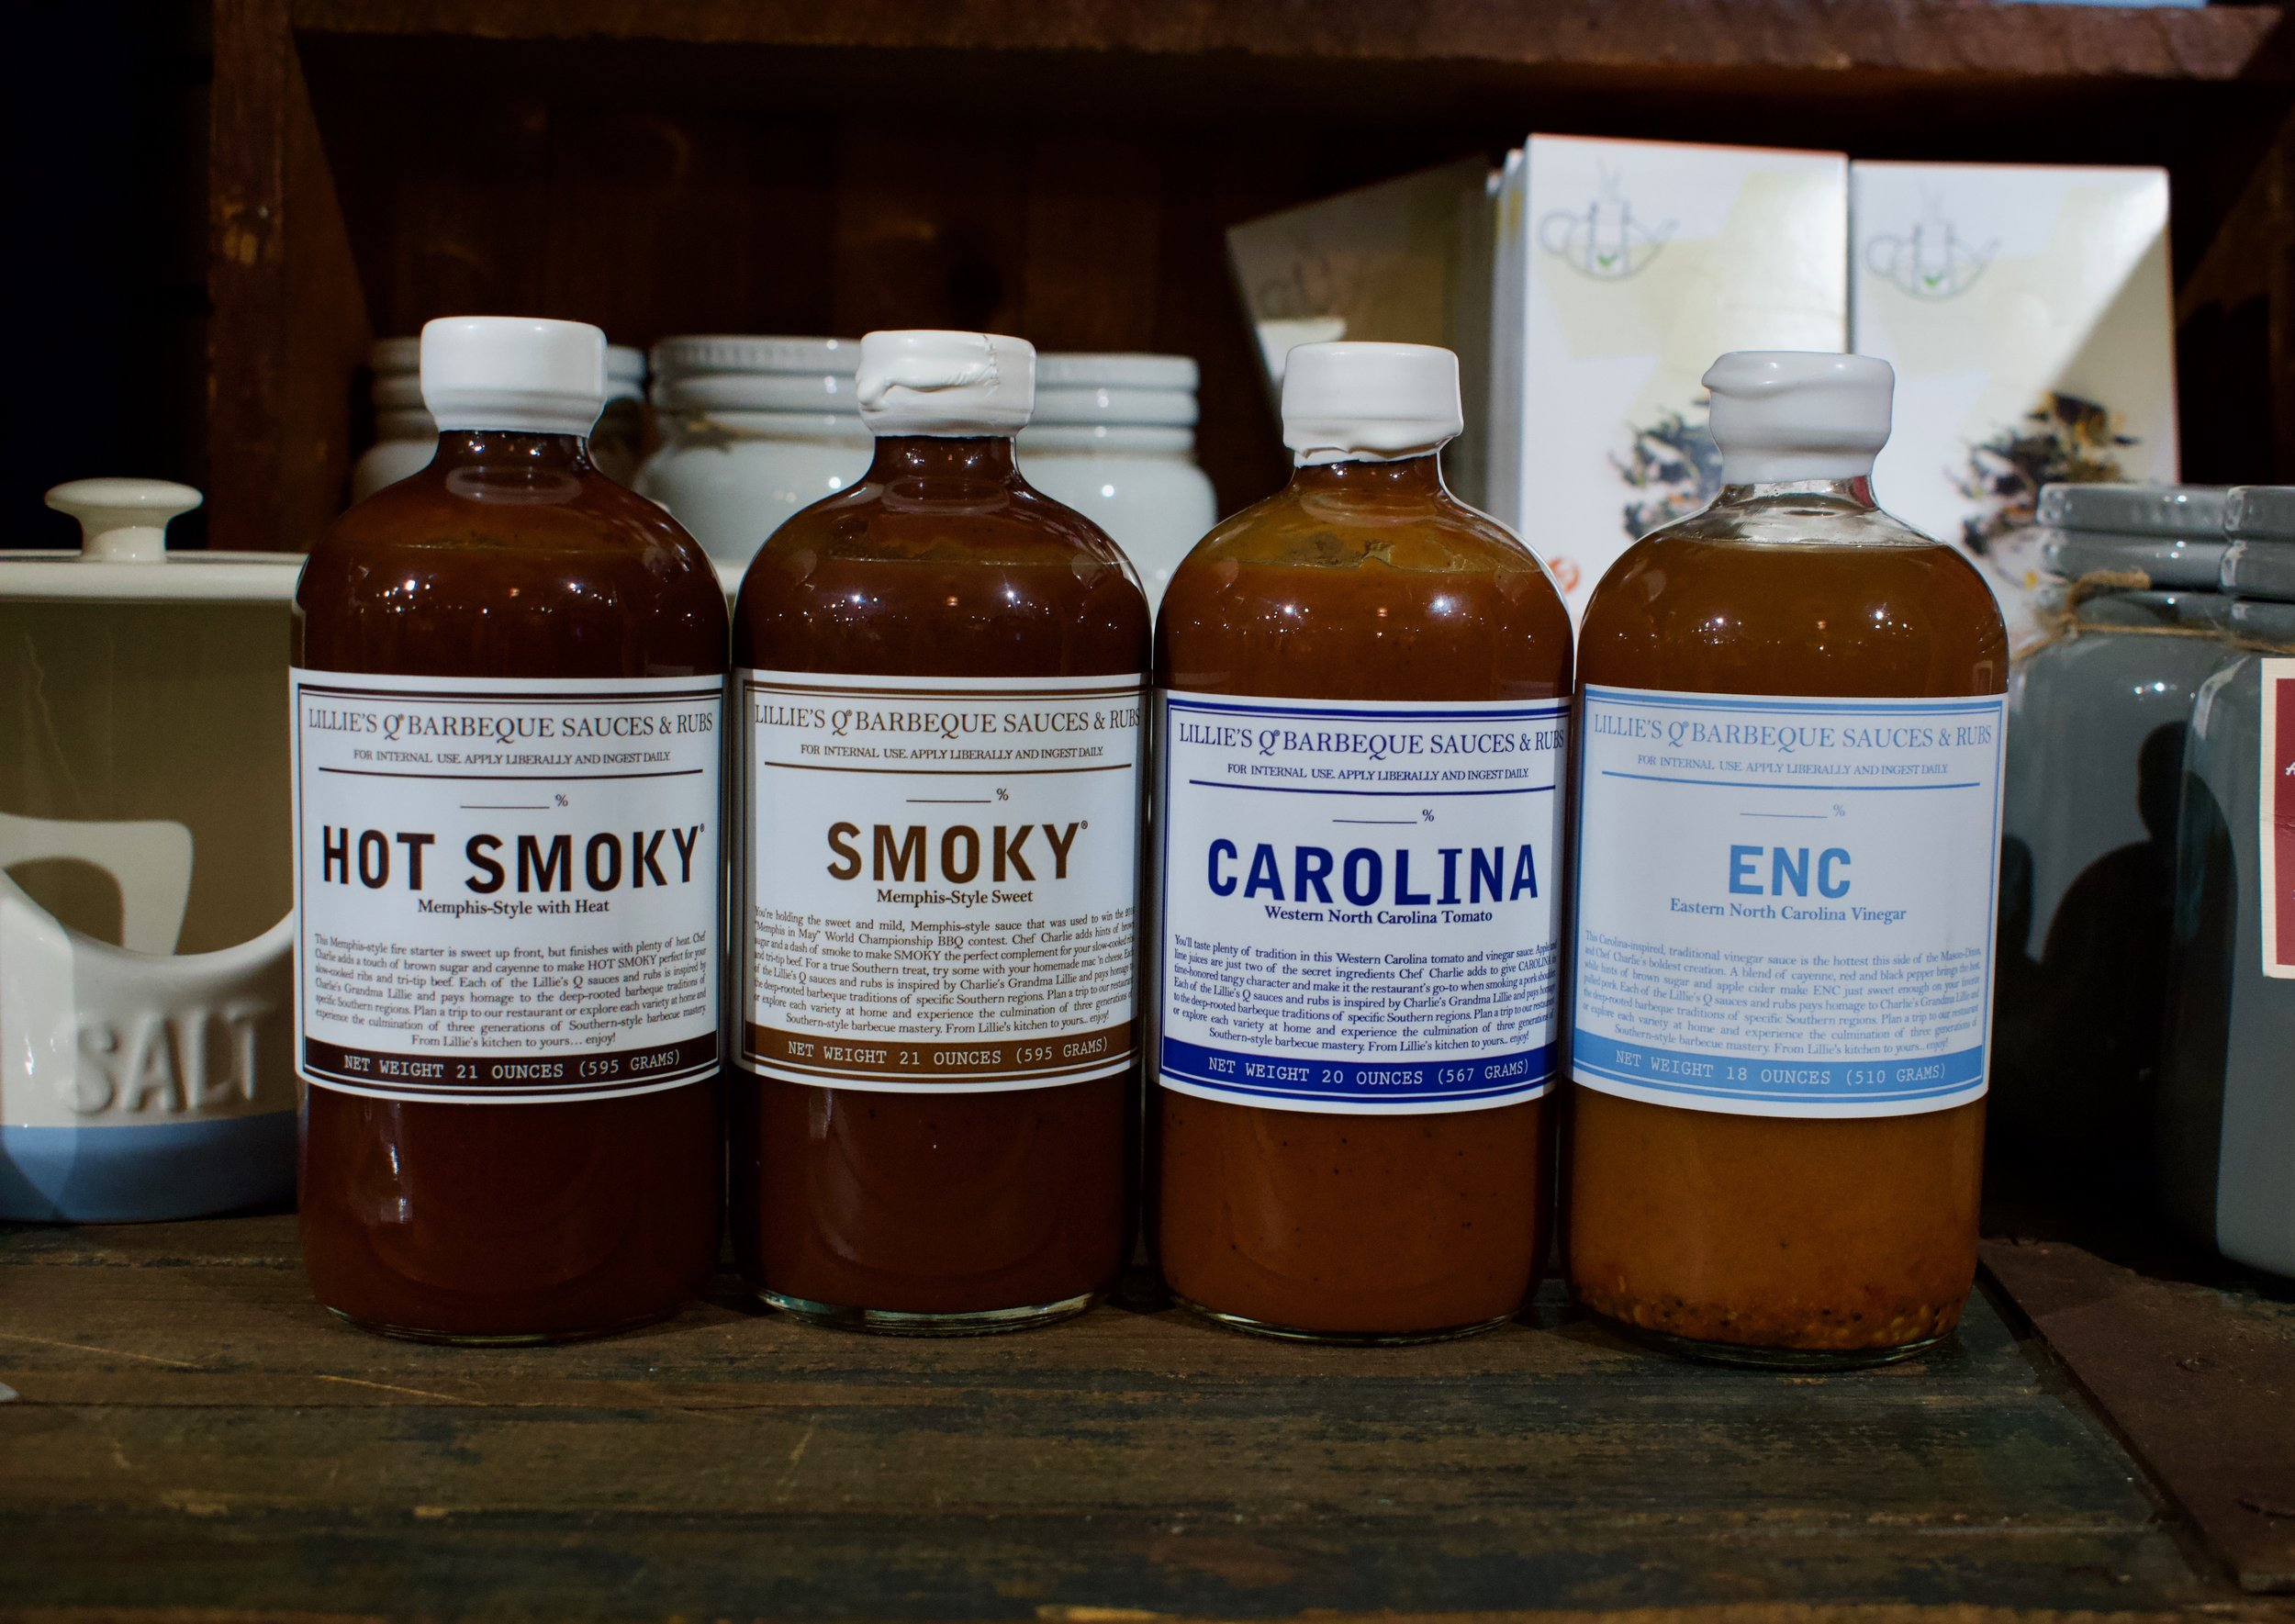 3. BBQ sauces in Memphis style hot-smoky and smoky, Western NC style tomato based, Eastern NC Vinegar based